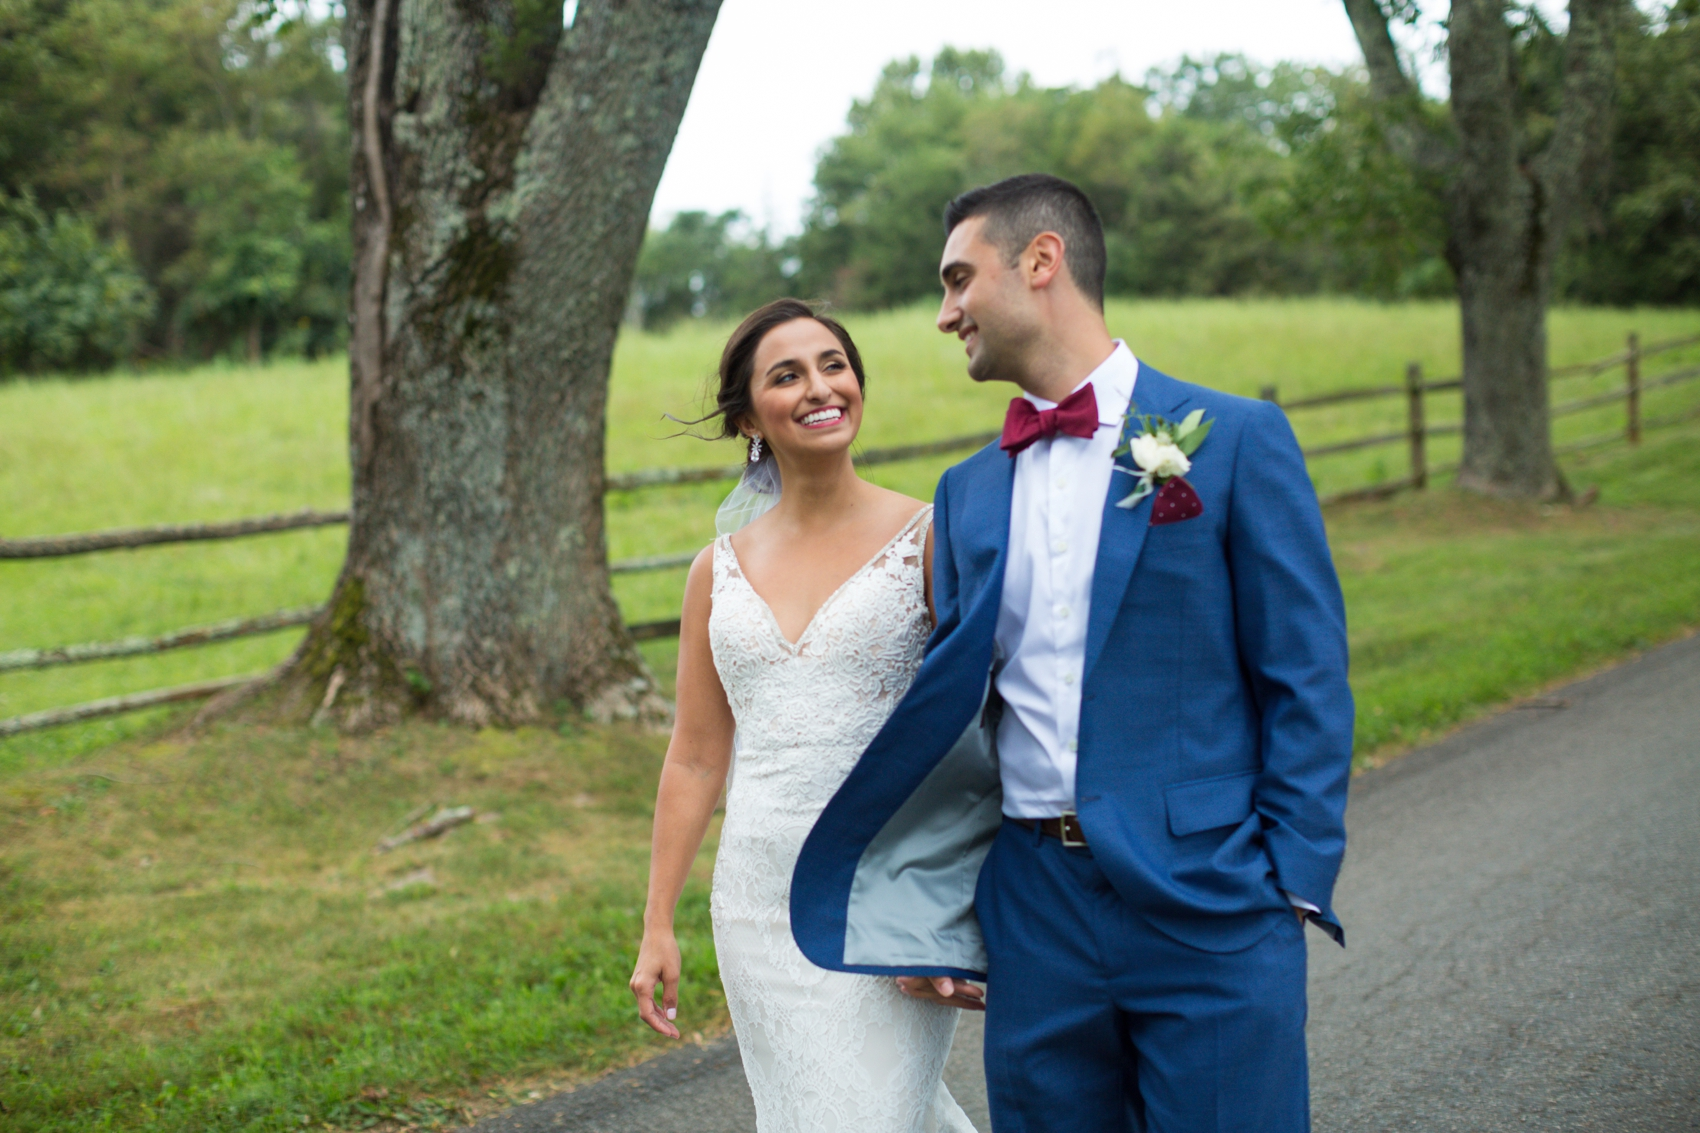 Ashlawn-Highland-Virginia-Wedding-2018-0136.jpg